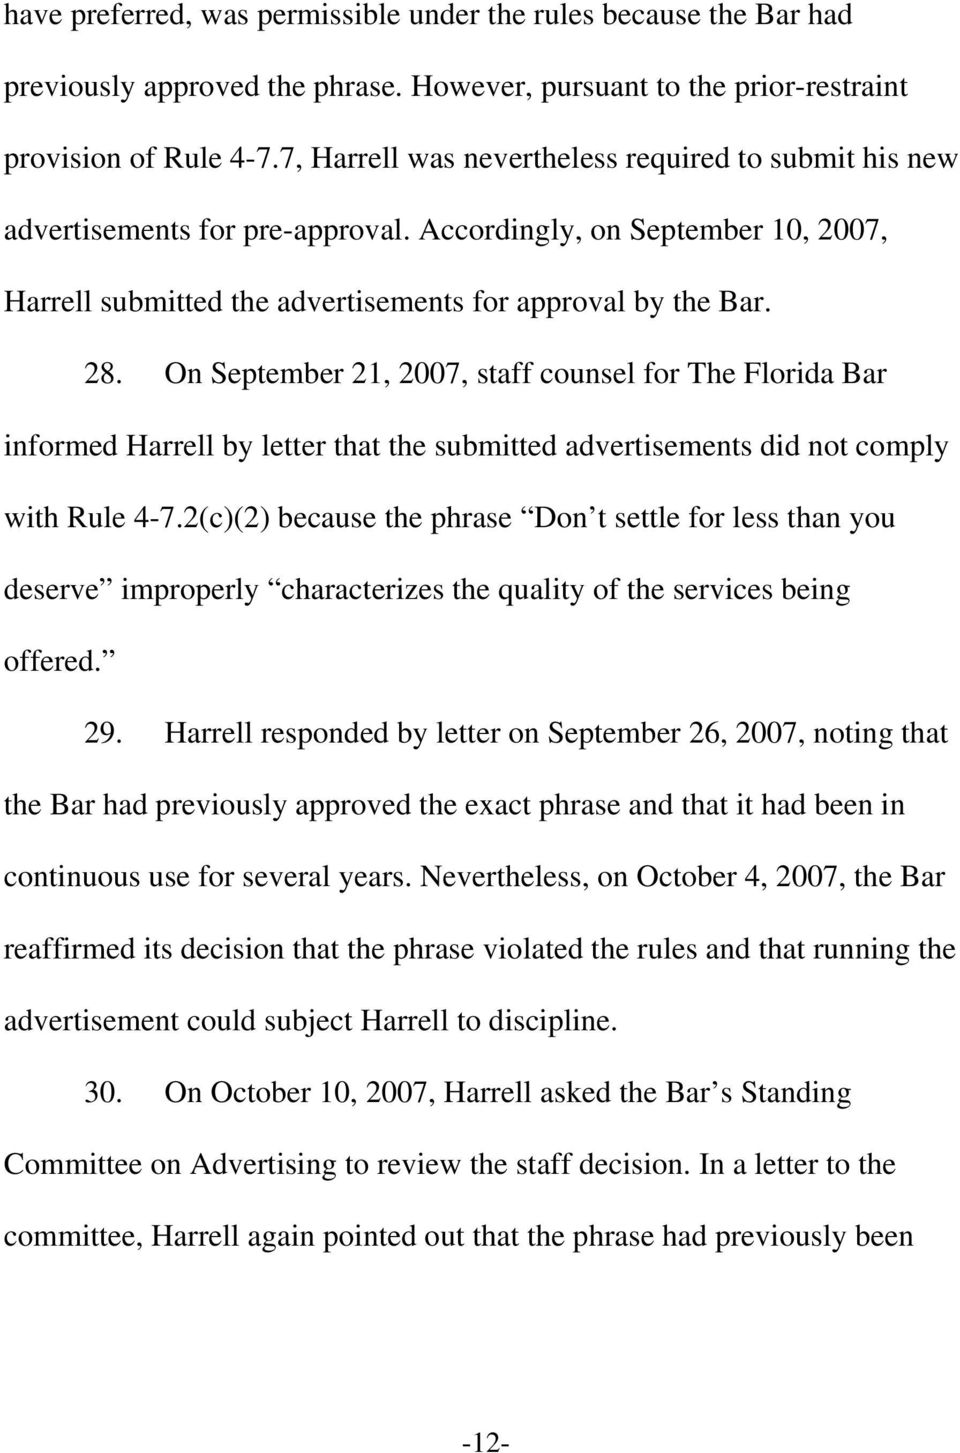 On September 21, 2007, staff counsel for The Florida Bar informed Harrell by letter that the submitted advertisements did not comply with Rule 4-7.